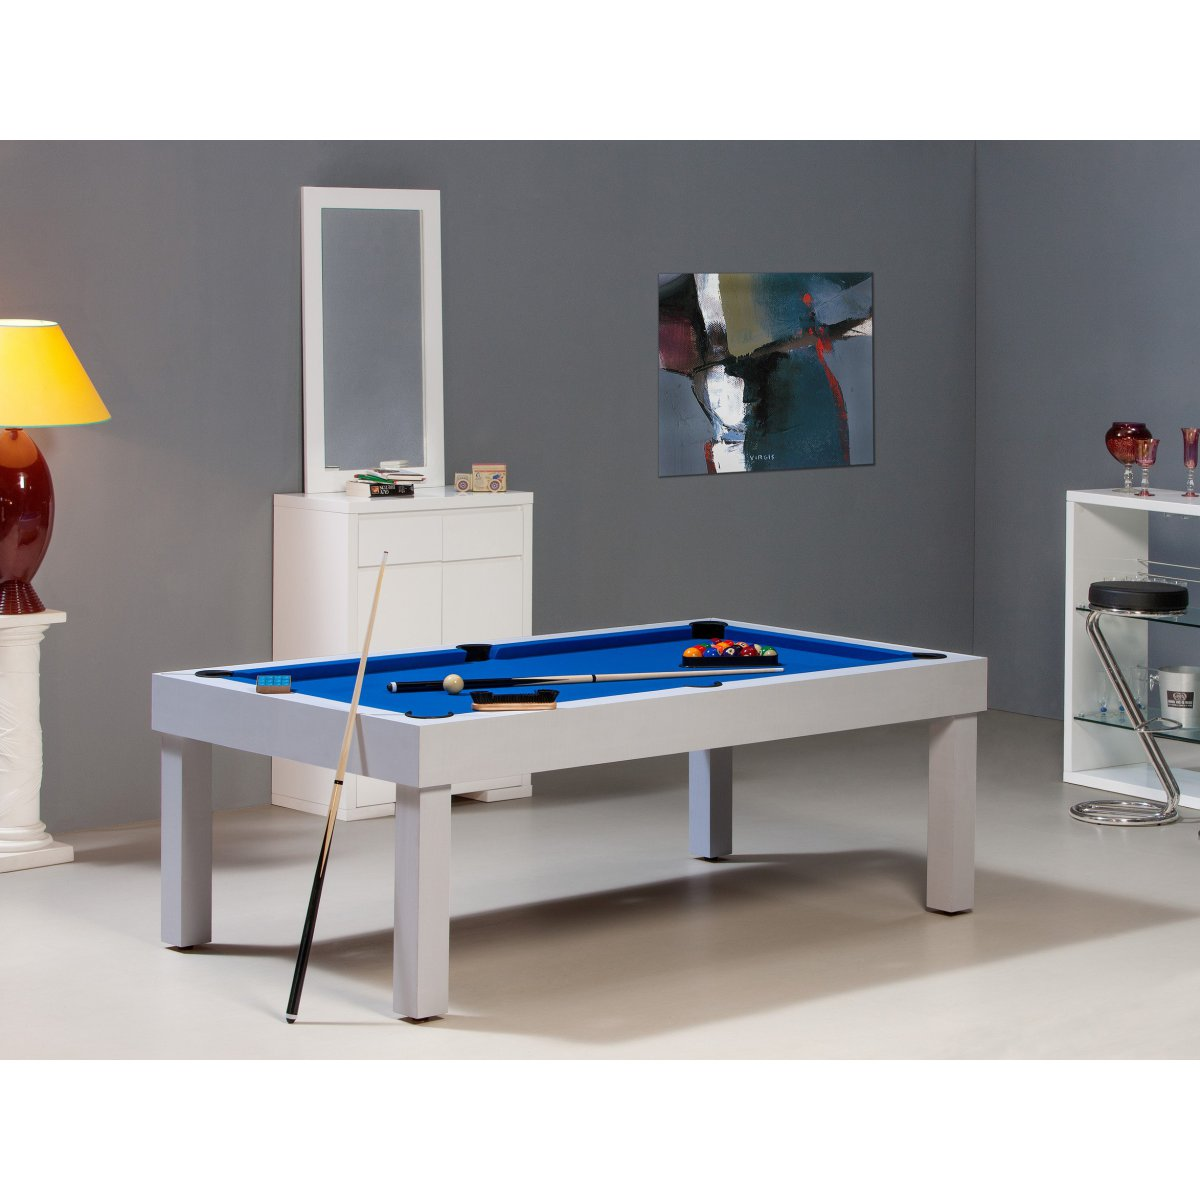 billard am ricain us et billard pool avec table bora bora. Black Bedroom Furniture Sets. Home Design Ideas